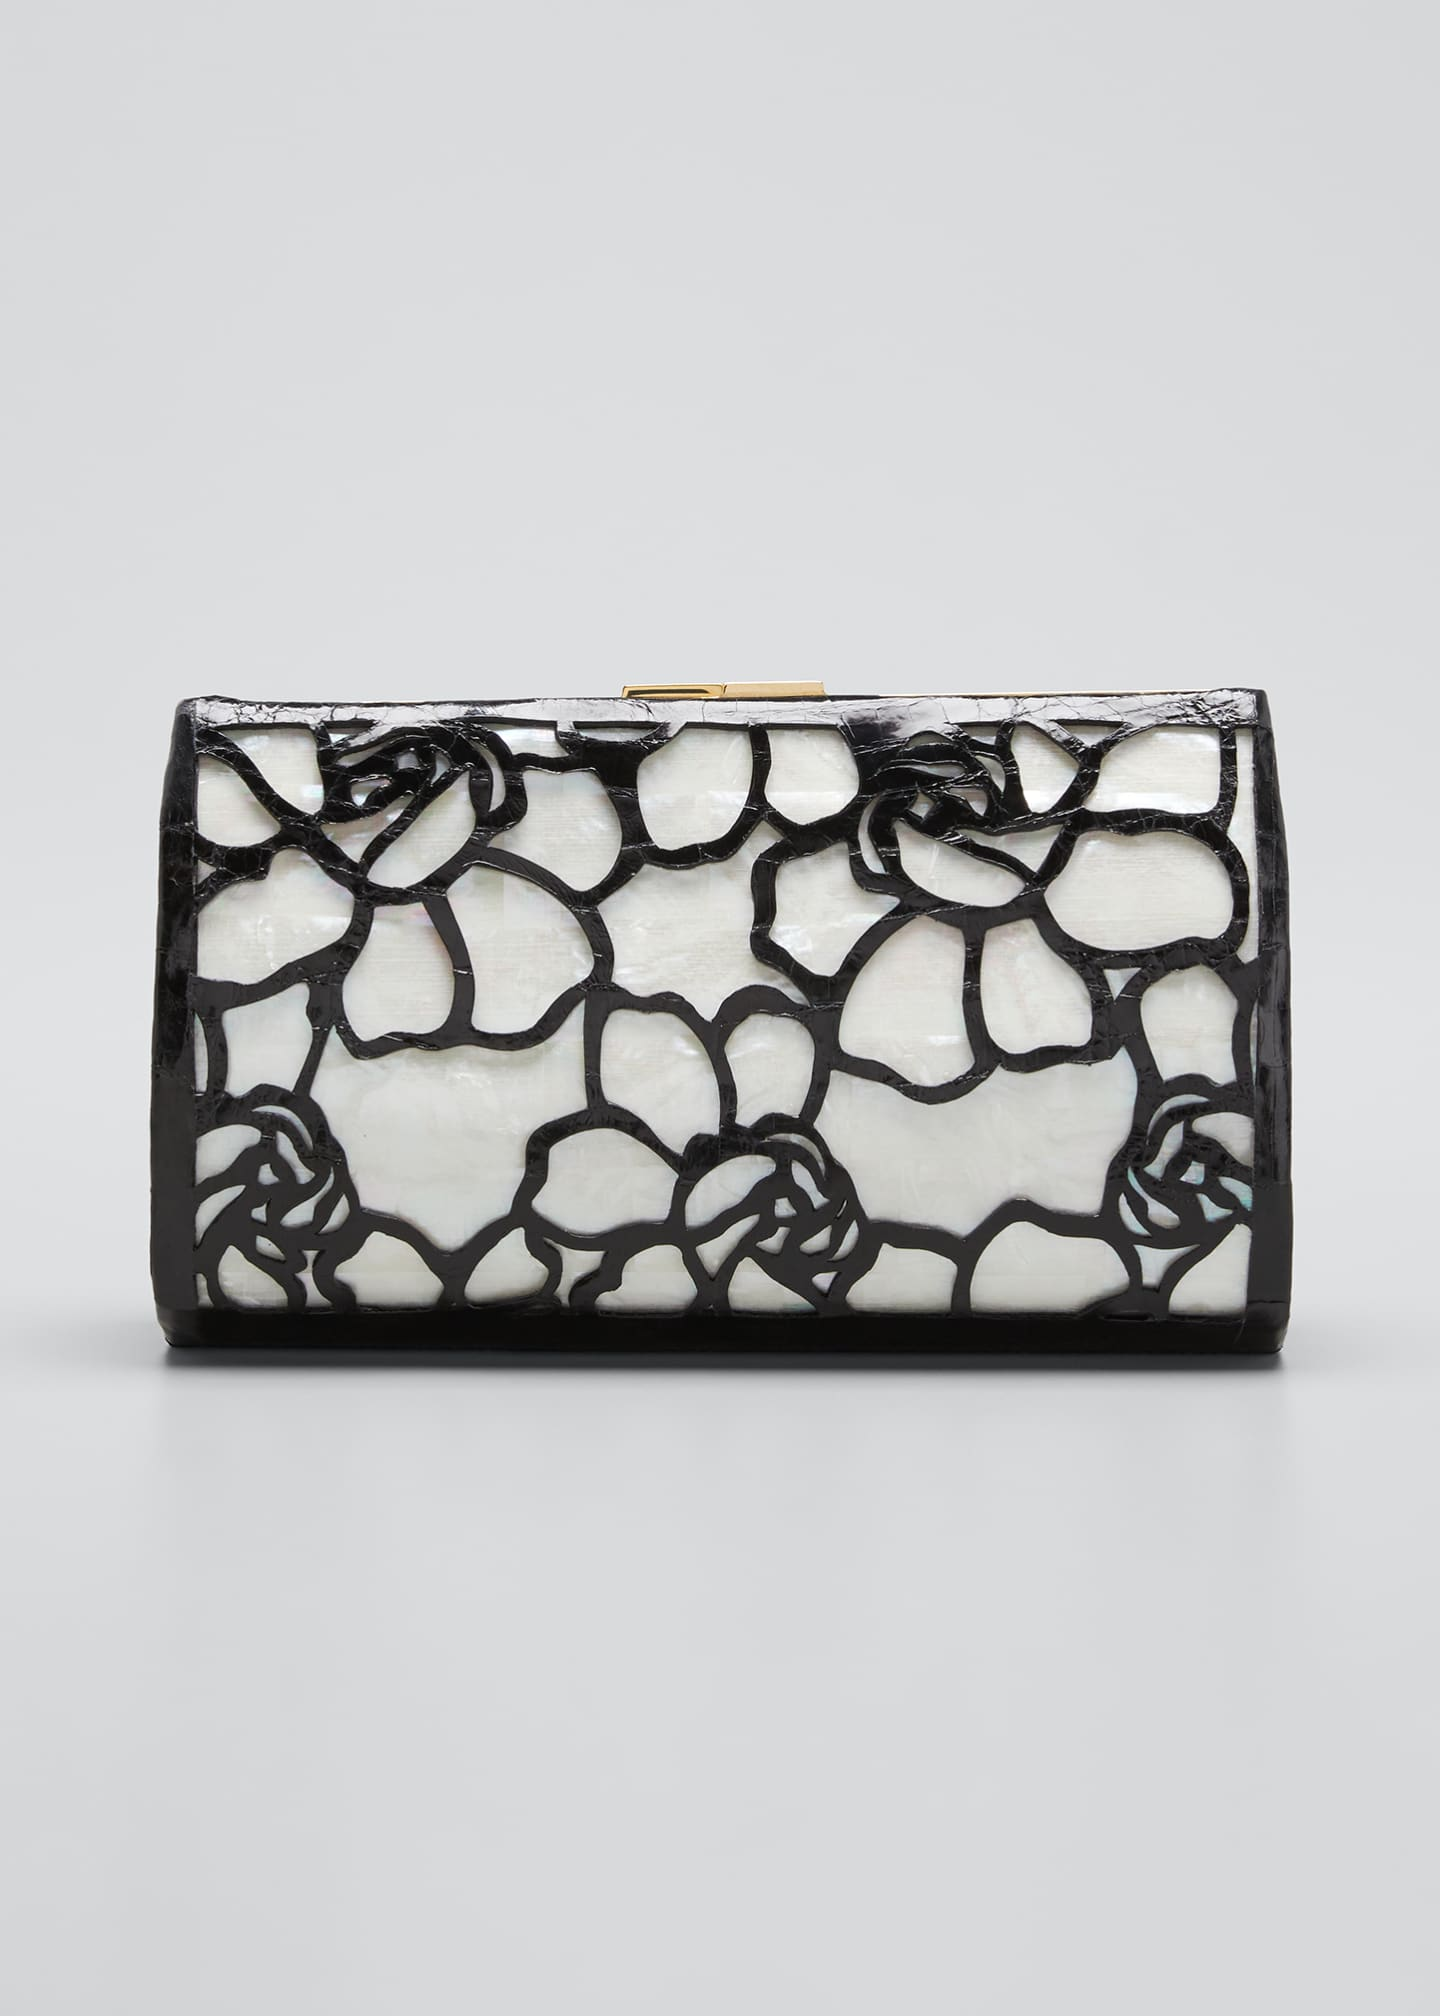 NANCY GONZALEZ Colette Exposed Frame Clutch Bag with Mother-of-Pearl